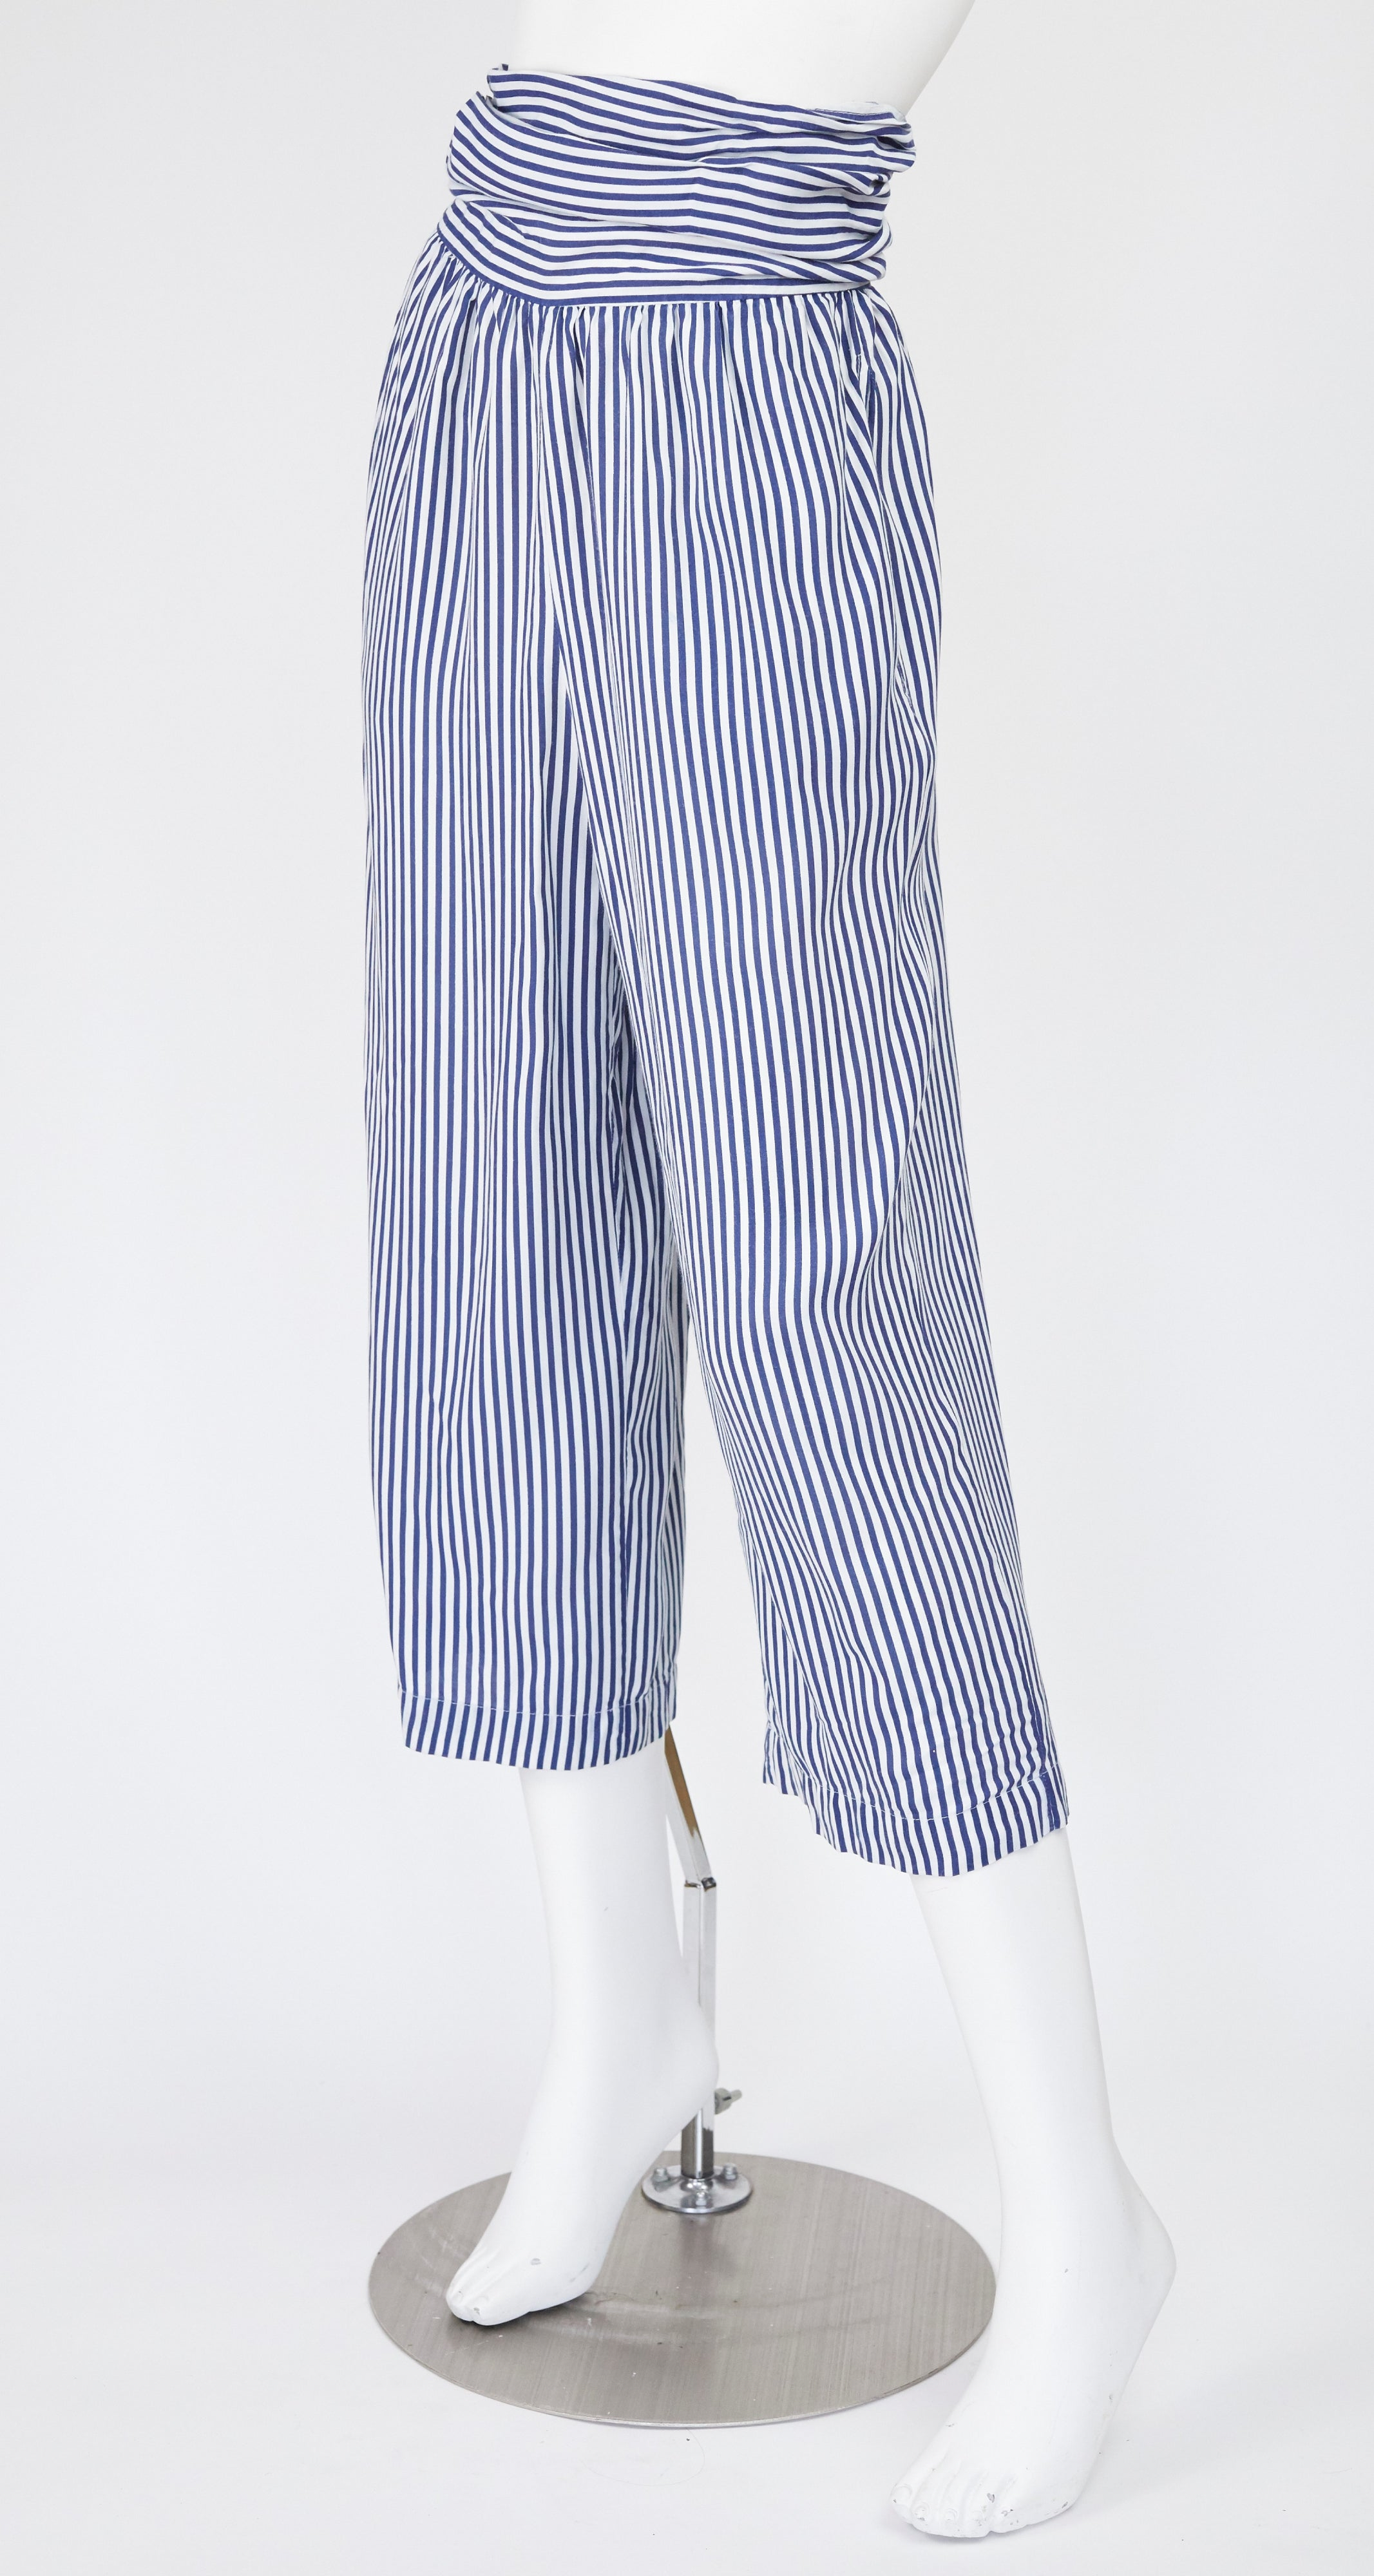 1970s White & Blue Striped Cotton High-Waisted Pants